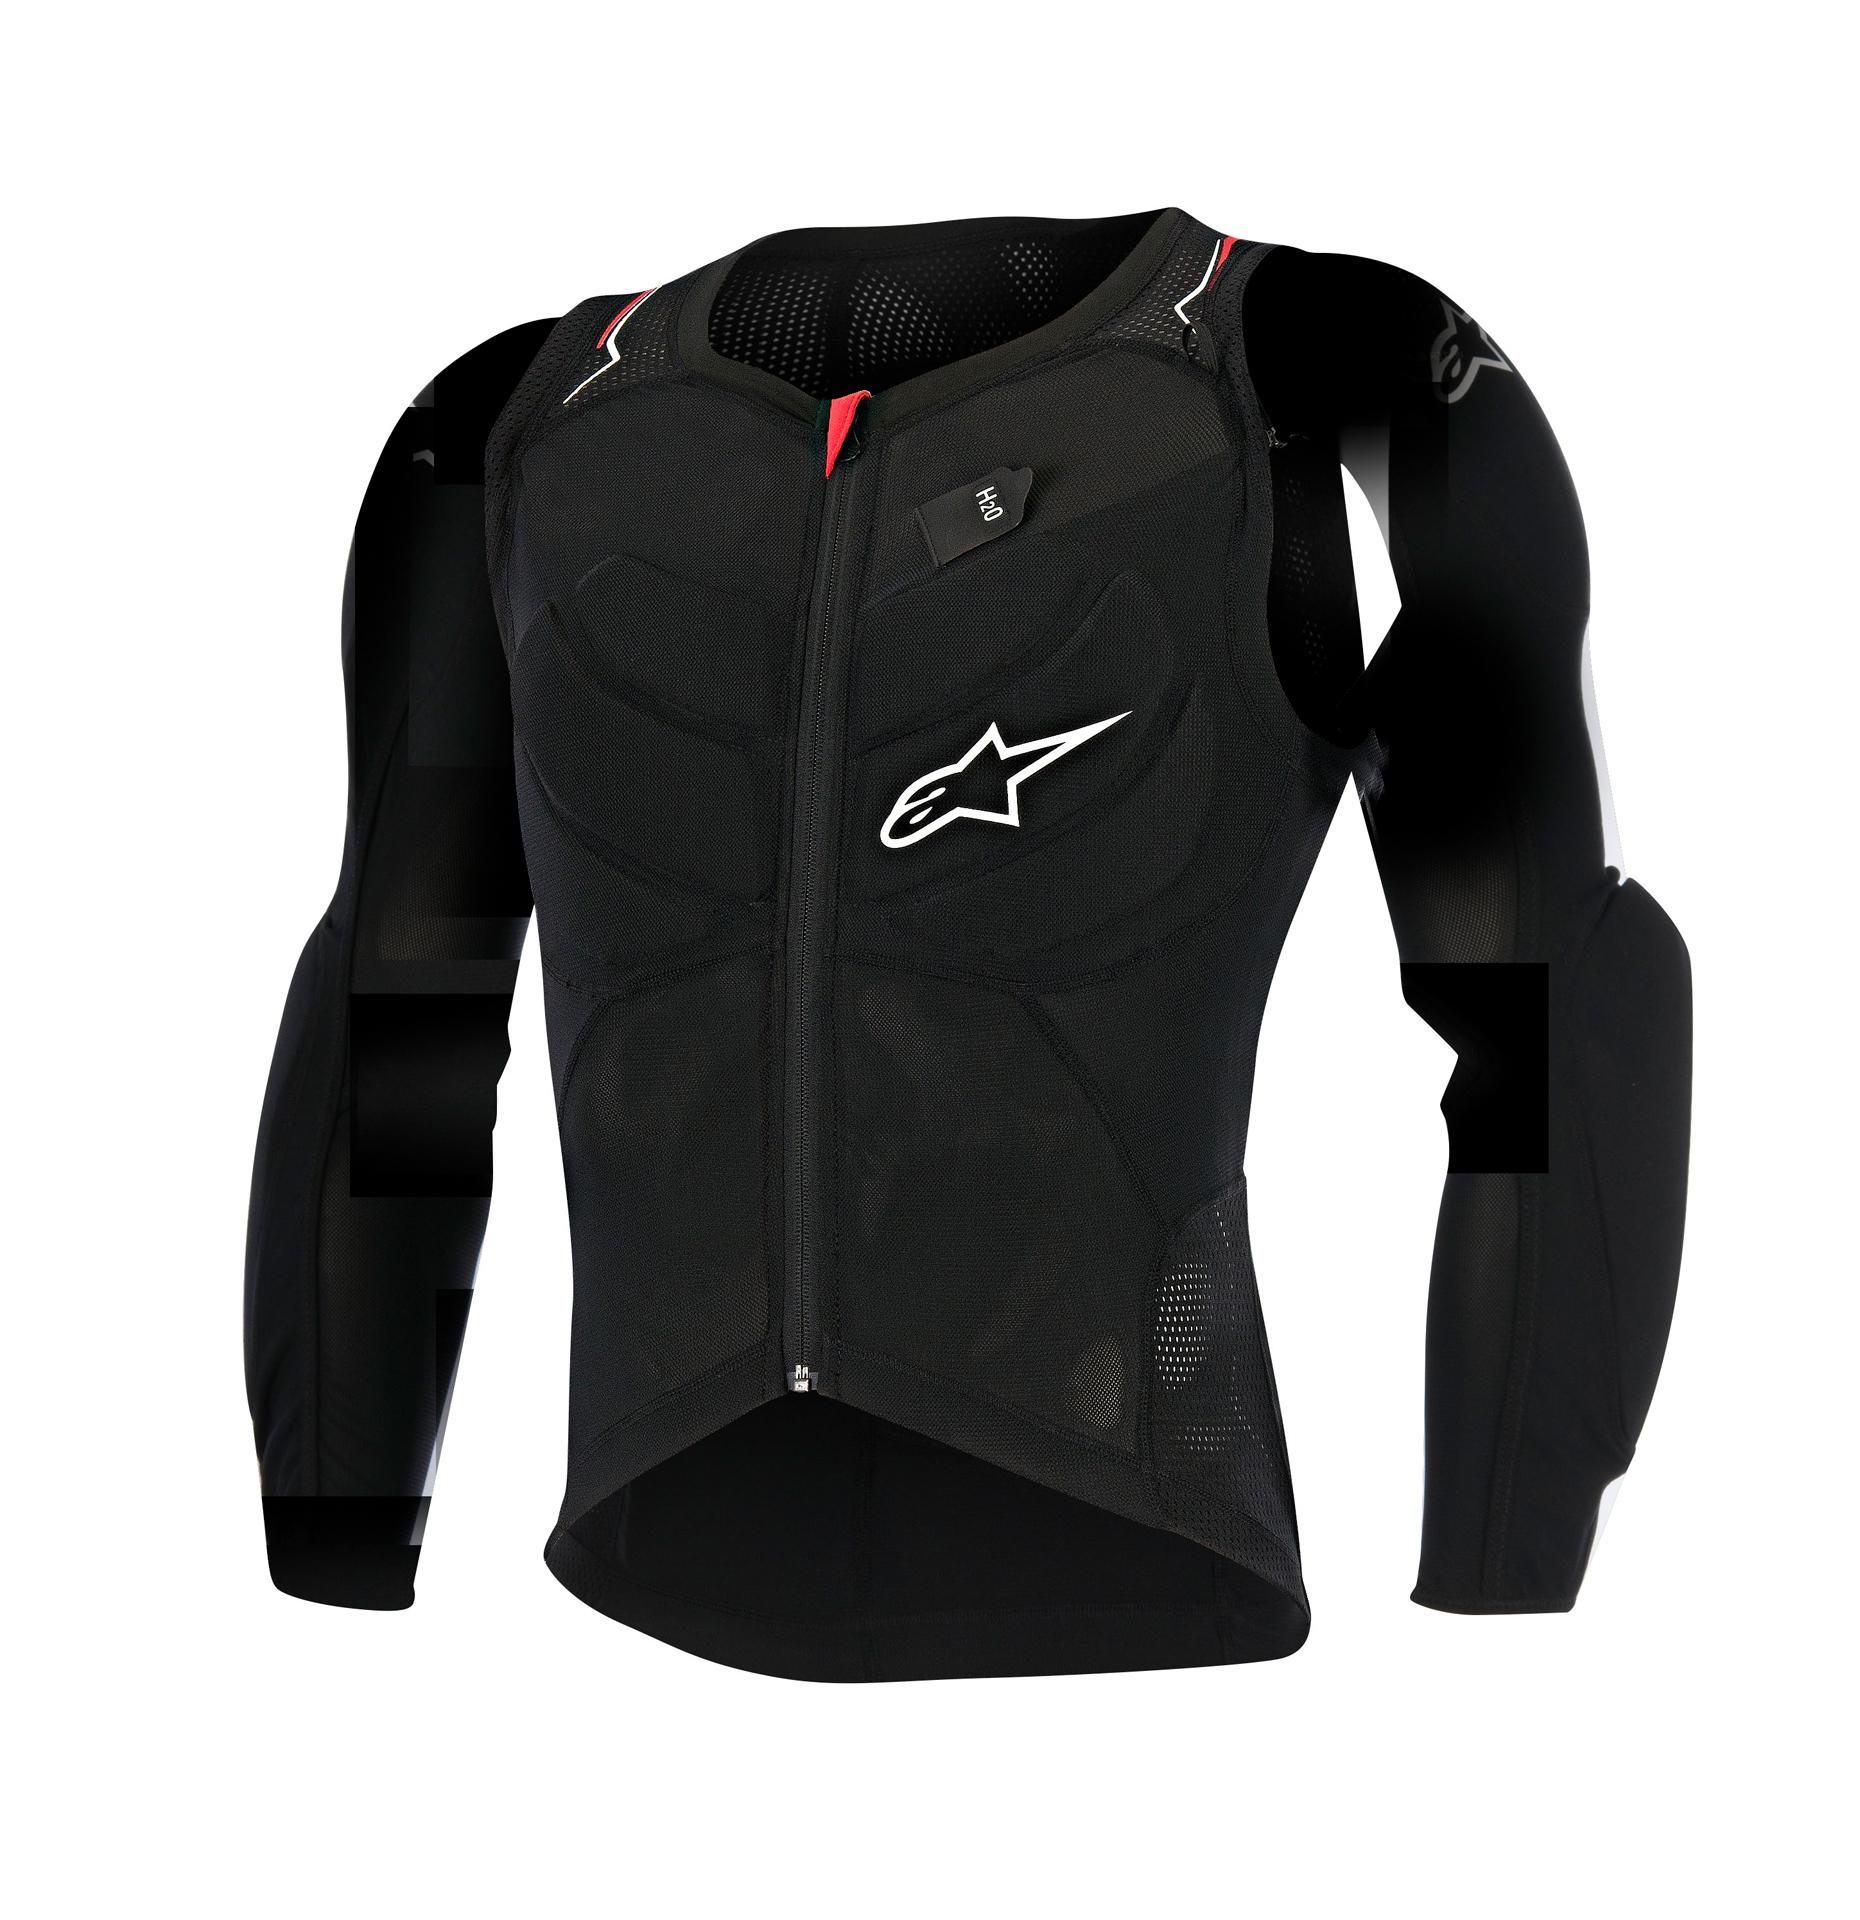 Alpinestars MTB Fietsjack Zwart Wit / AL Evolution Ls Jacket-Black White Red